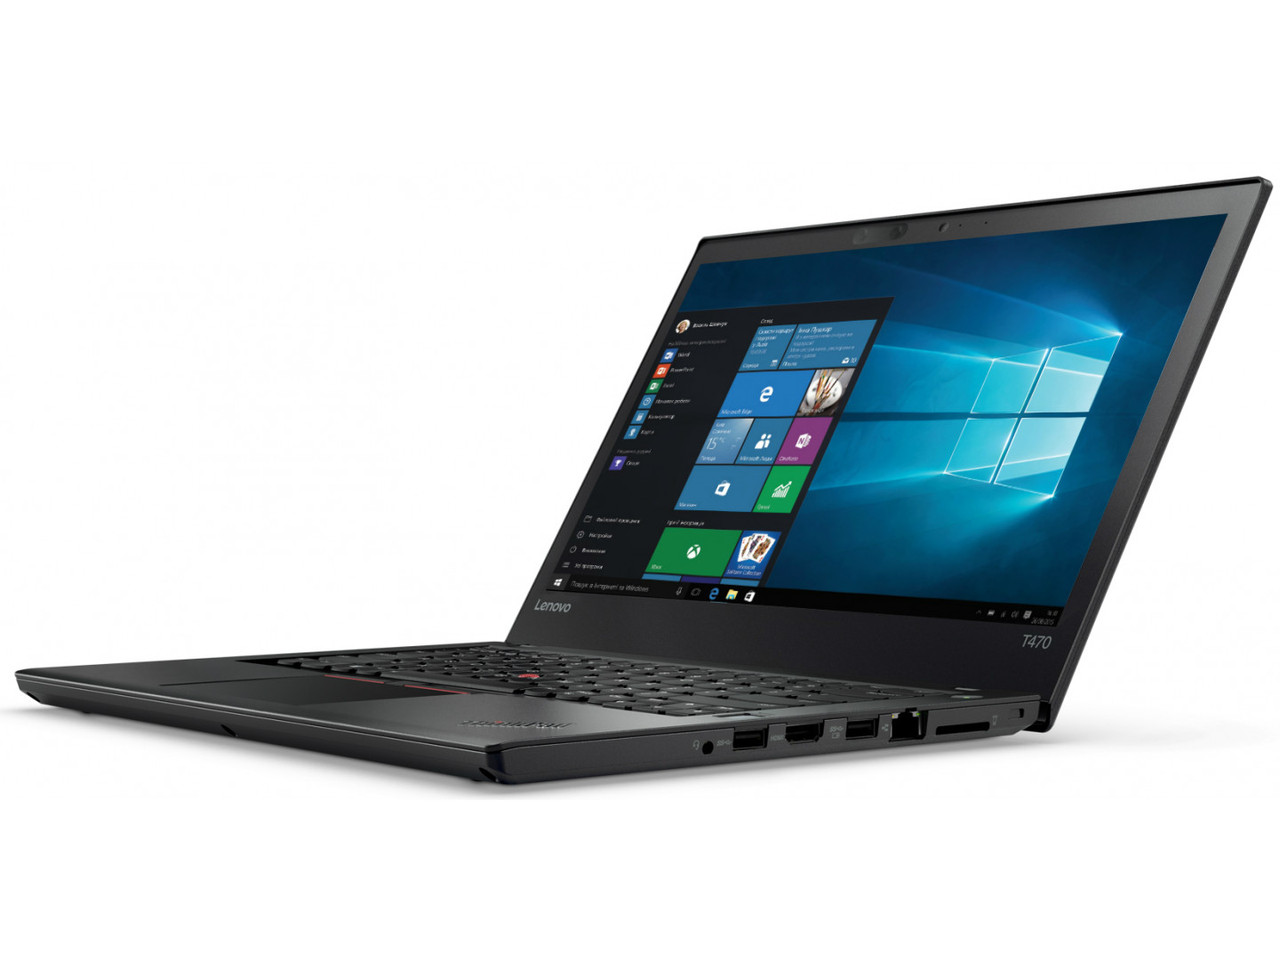 Ноутбук Lenovo ThinkPad T470-Intel Core i5-7300U-2.6GHz-4Gb-DDR4-128Gb-SSD-W14-IPS-FHD-Web-батерея-(B)- Б/У